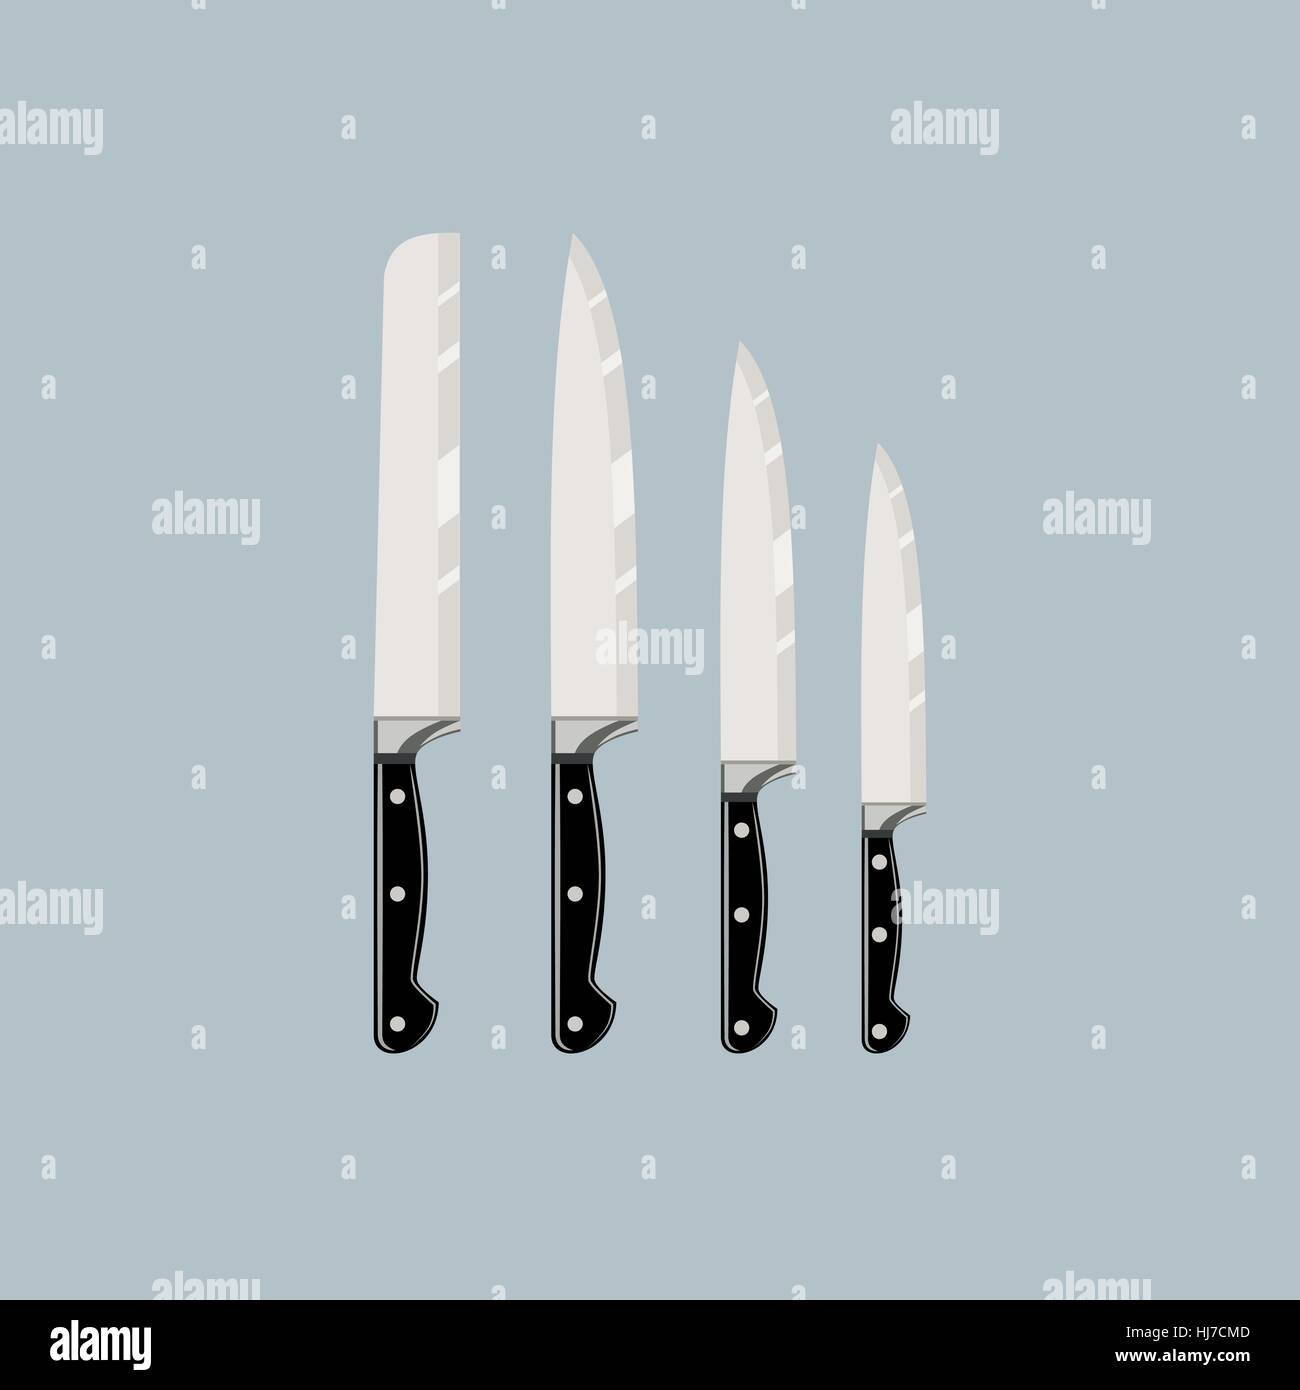 Knives Stock Vector Images - Alamy